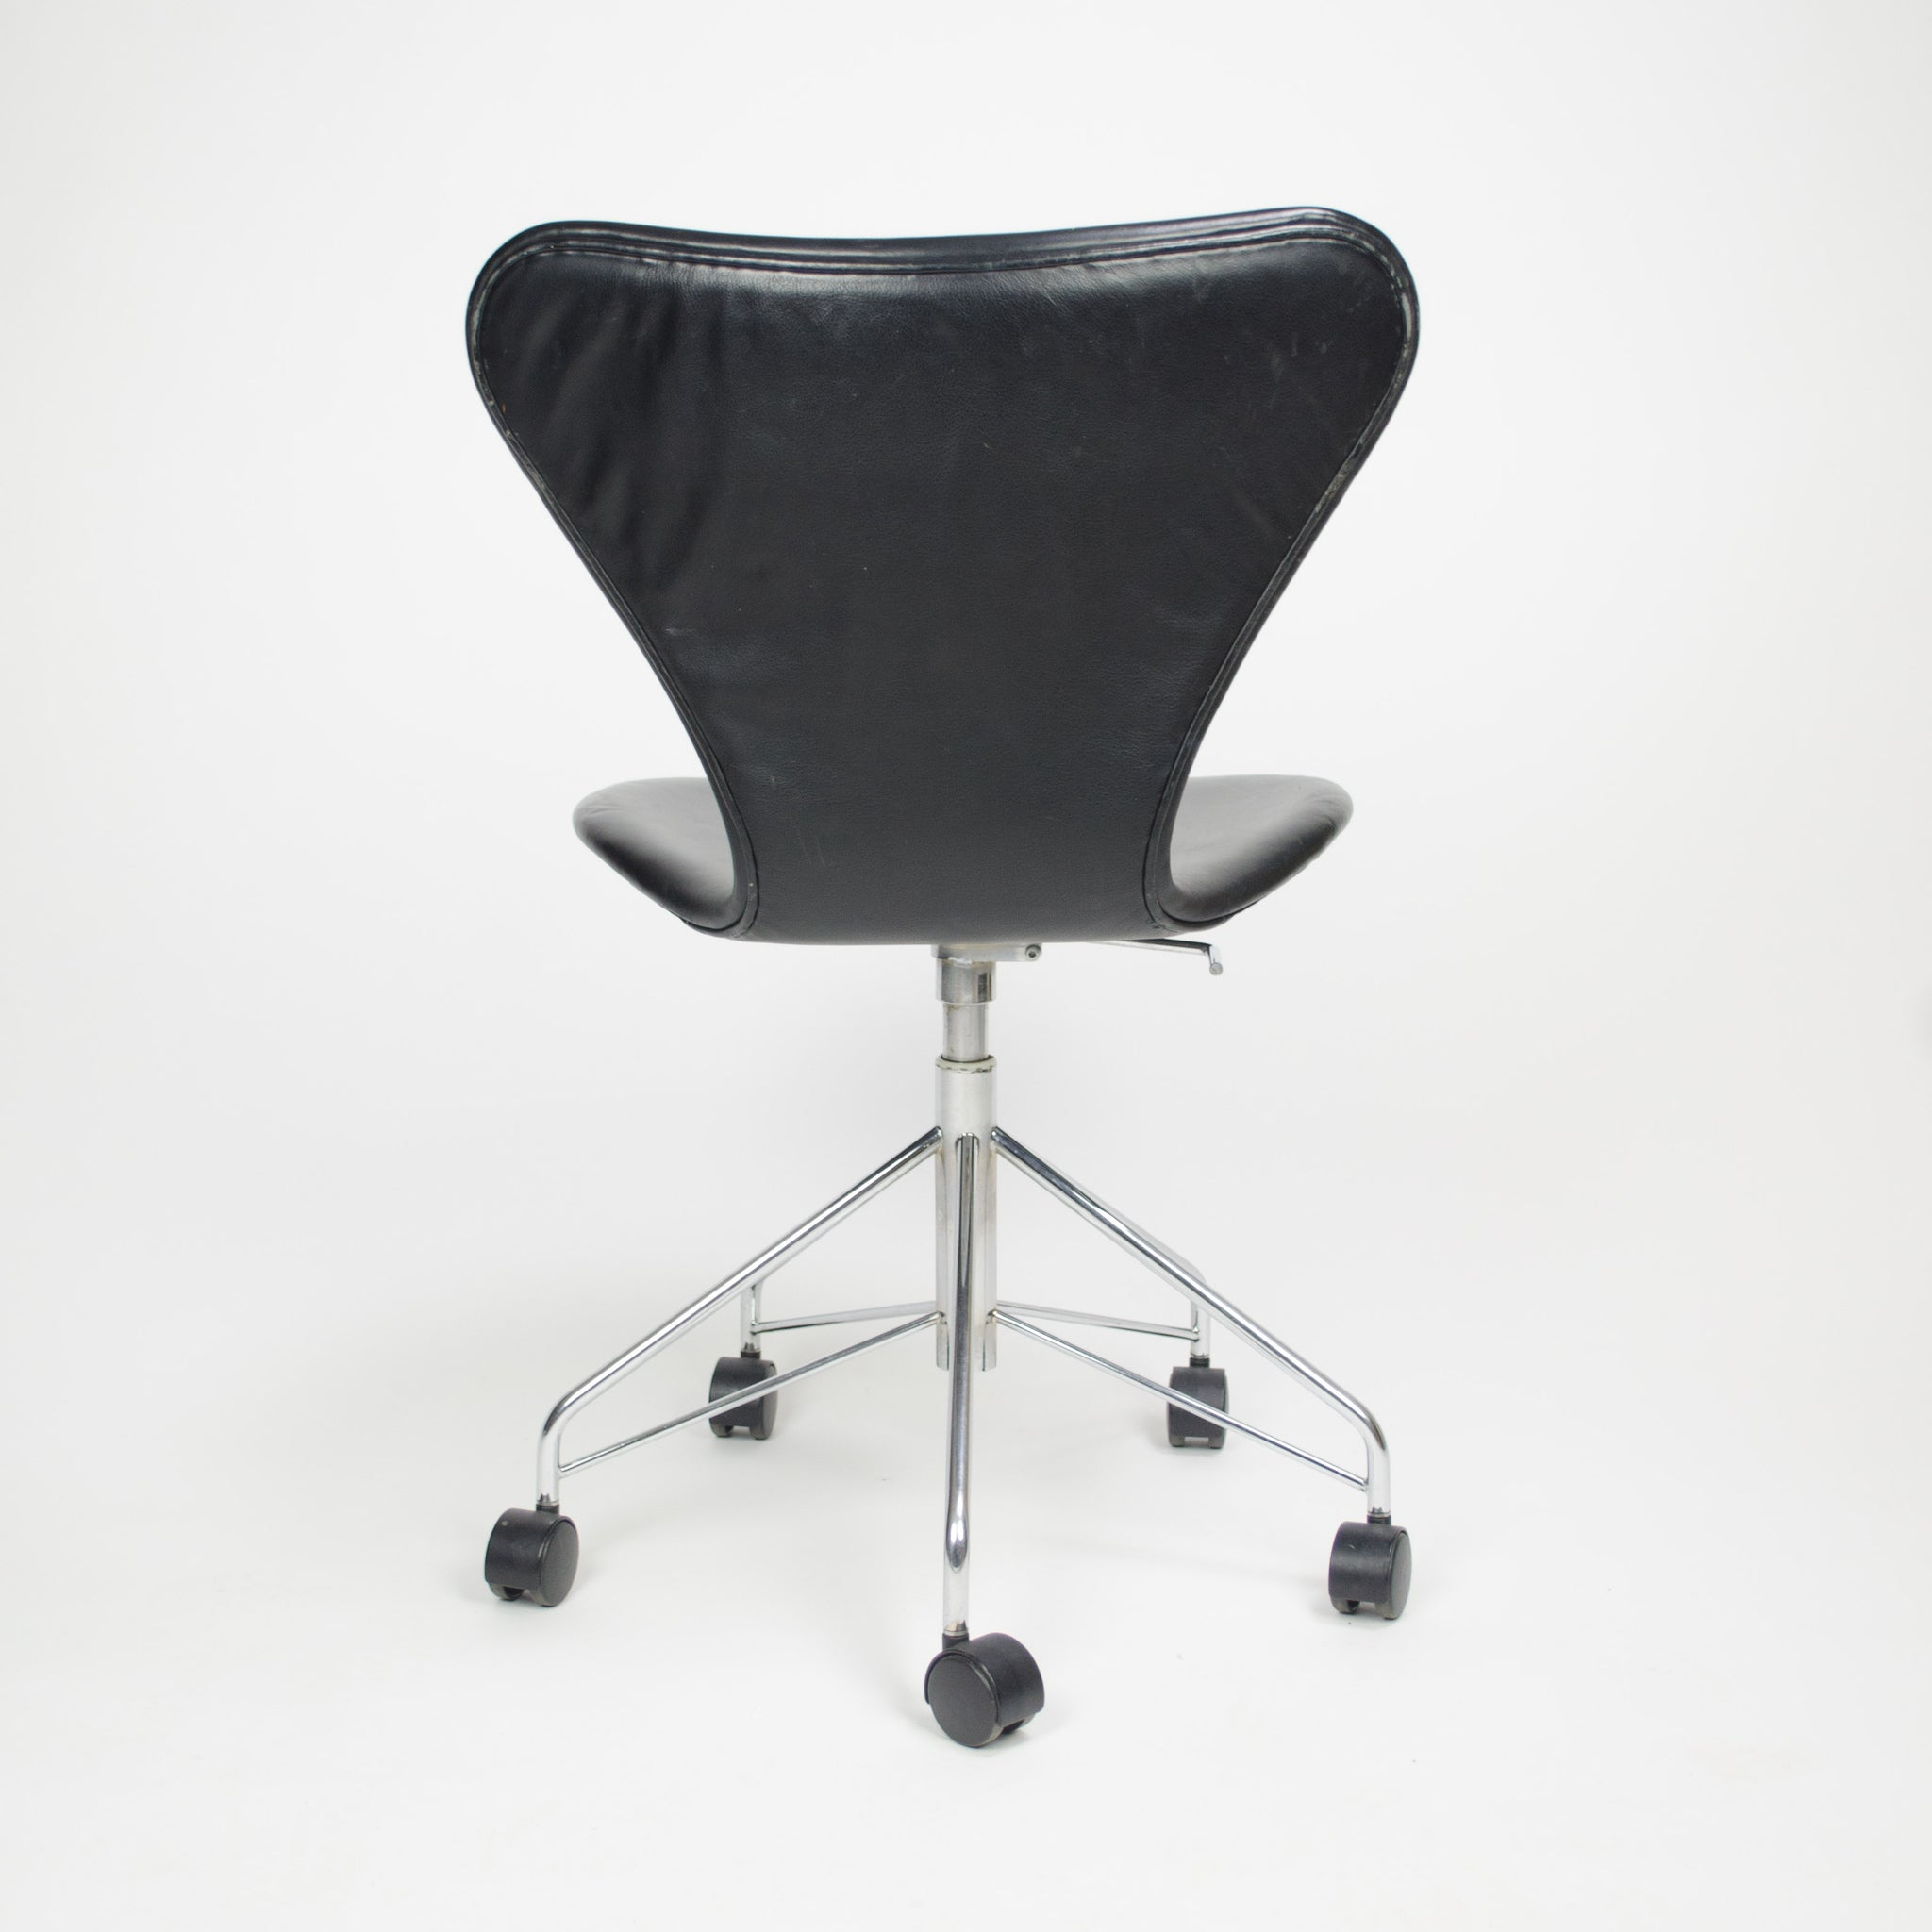 SOLD Arne Jacobsen 3117 for Fritz Hansen Denmark Rolling Desk Chair